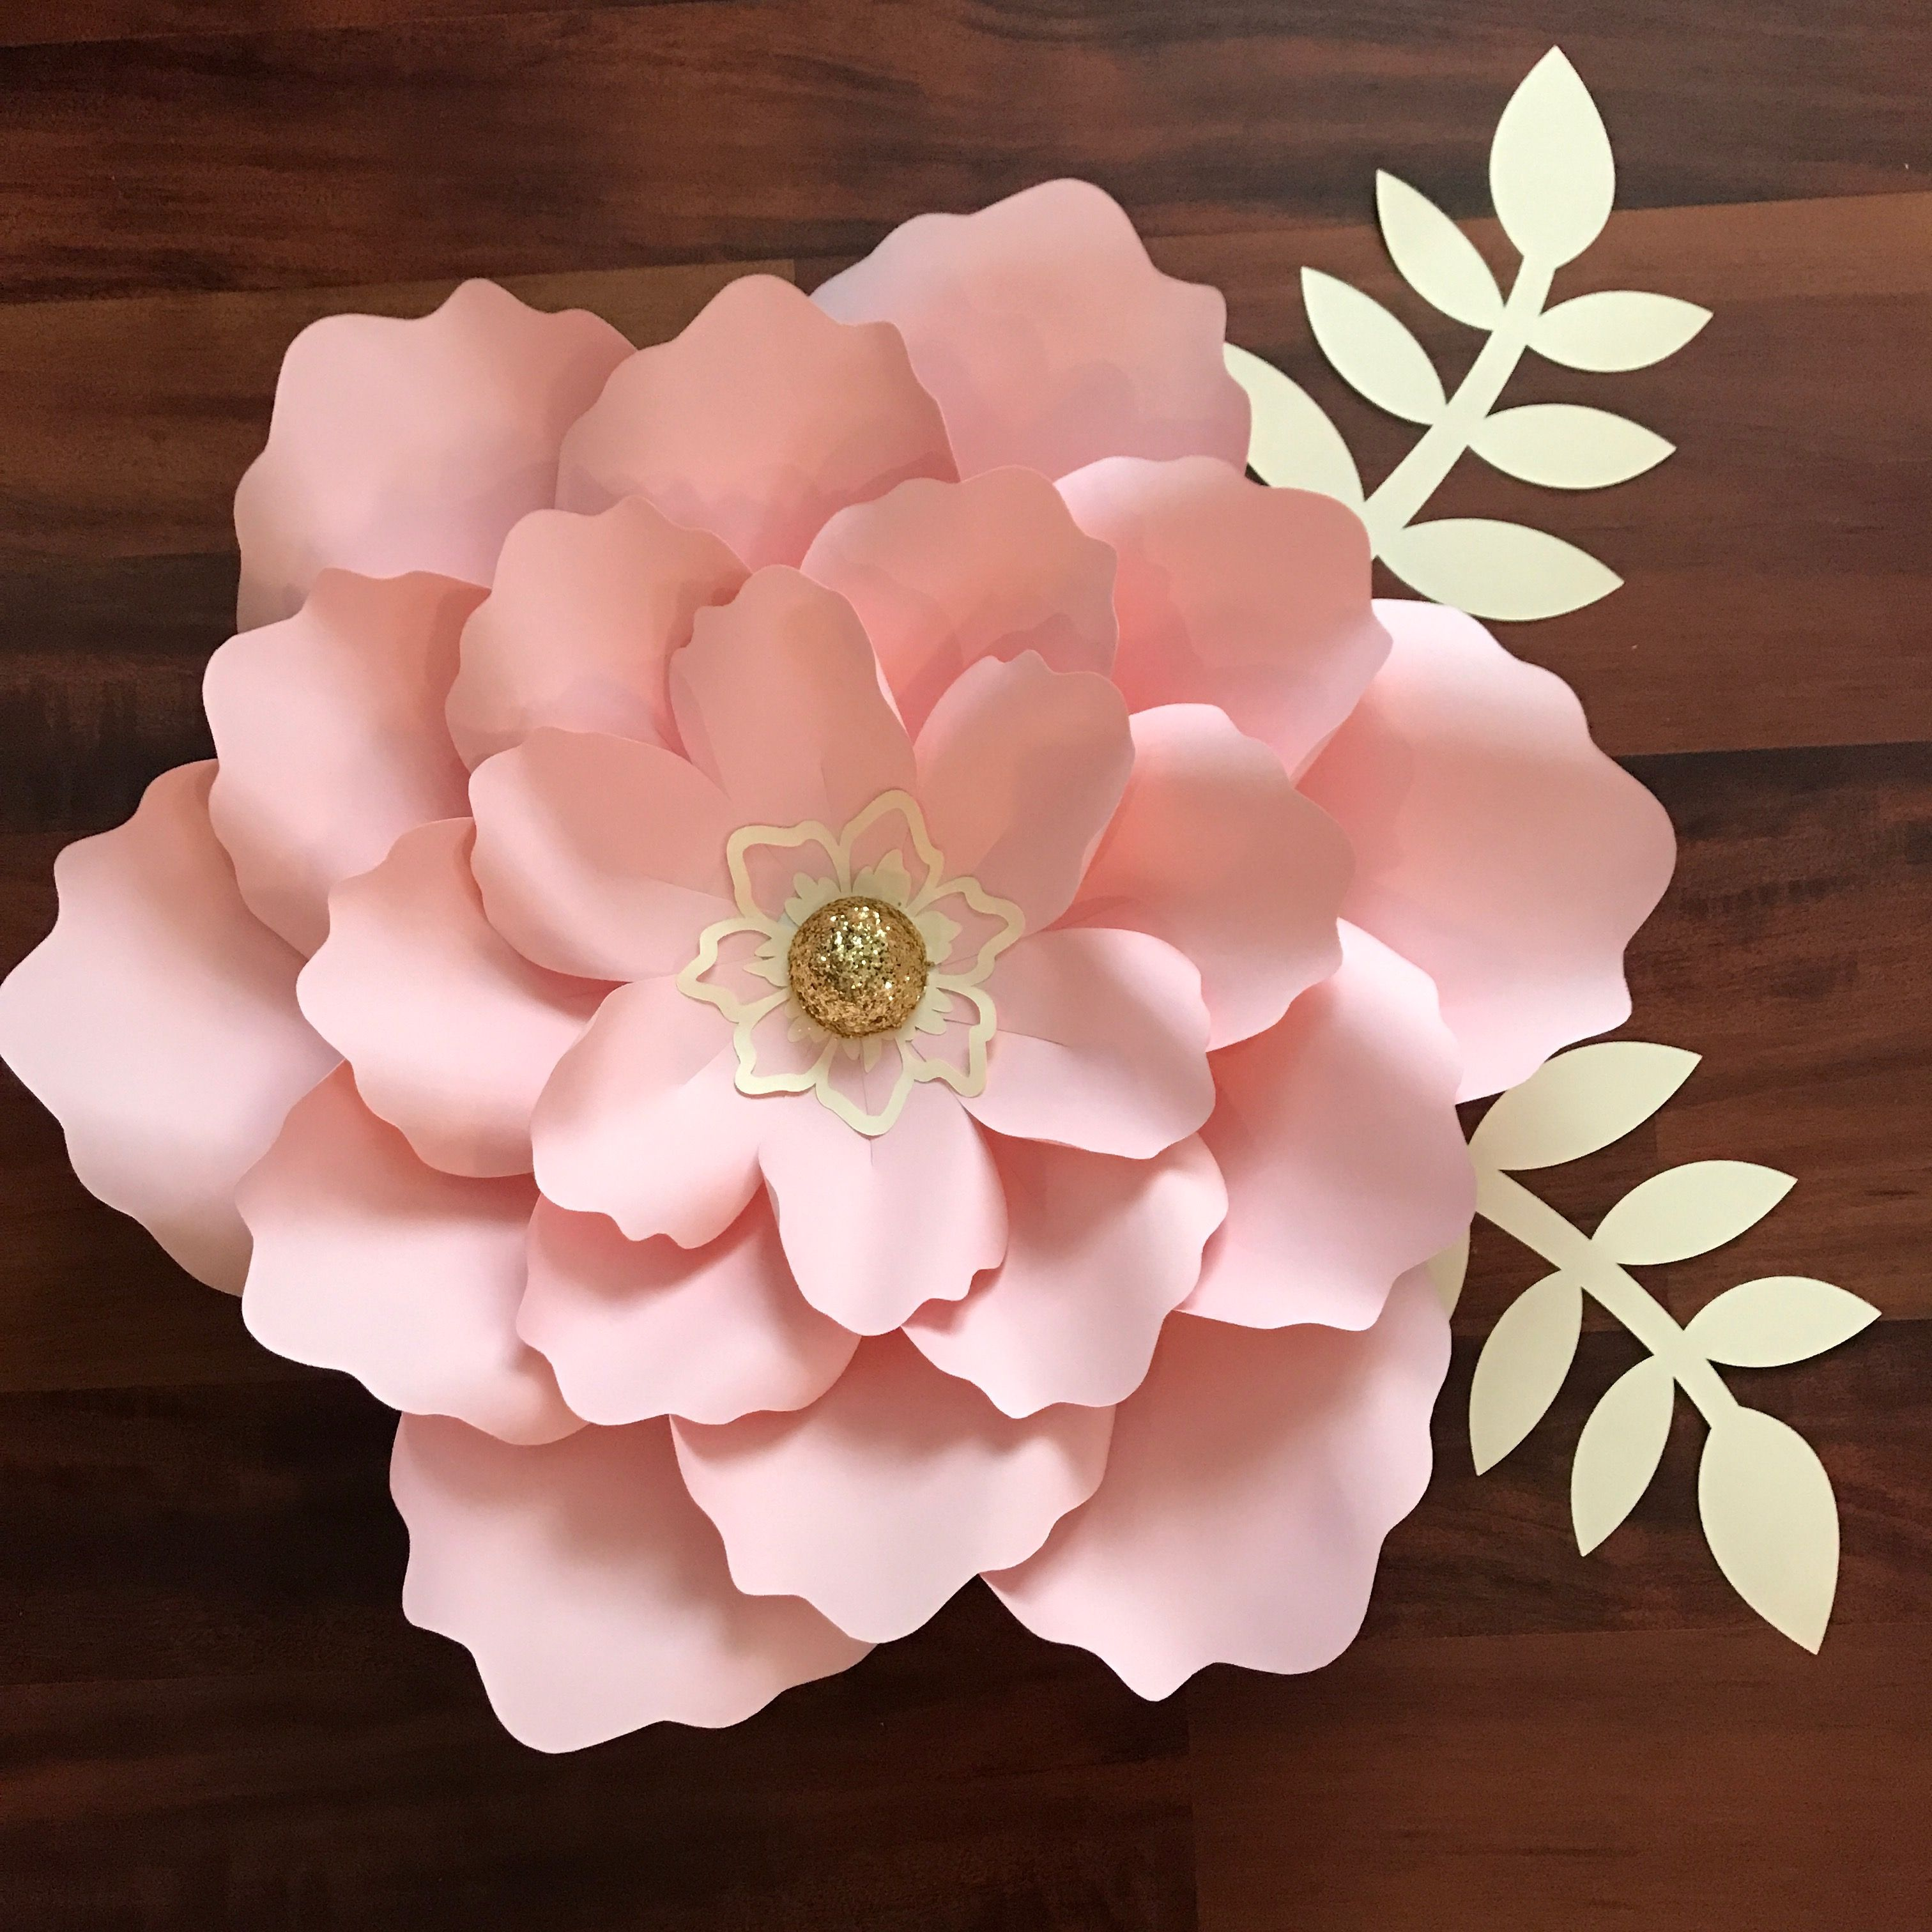 Svg Petal 21 Paper Flower Template With Base Cutting Machines Such